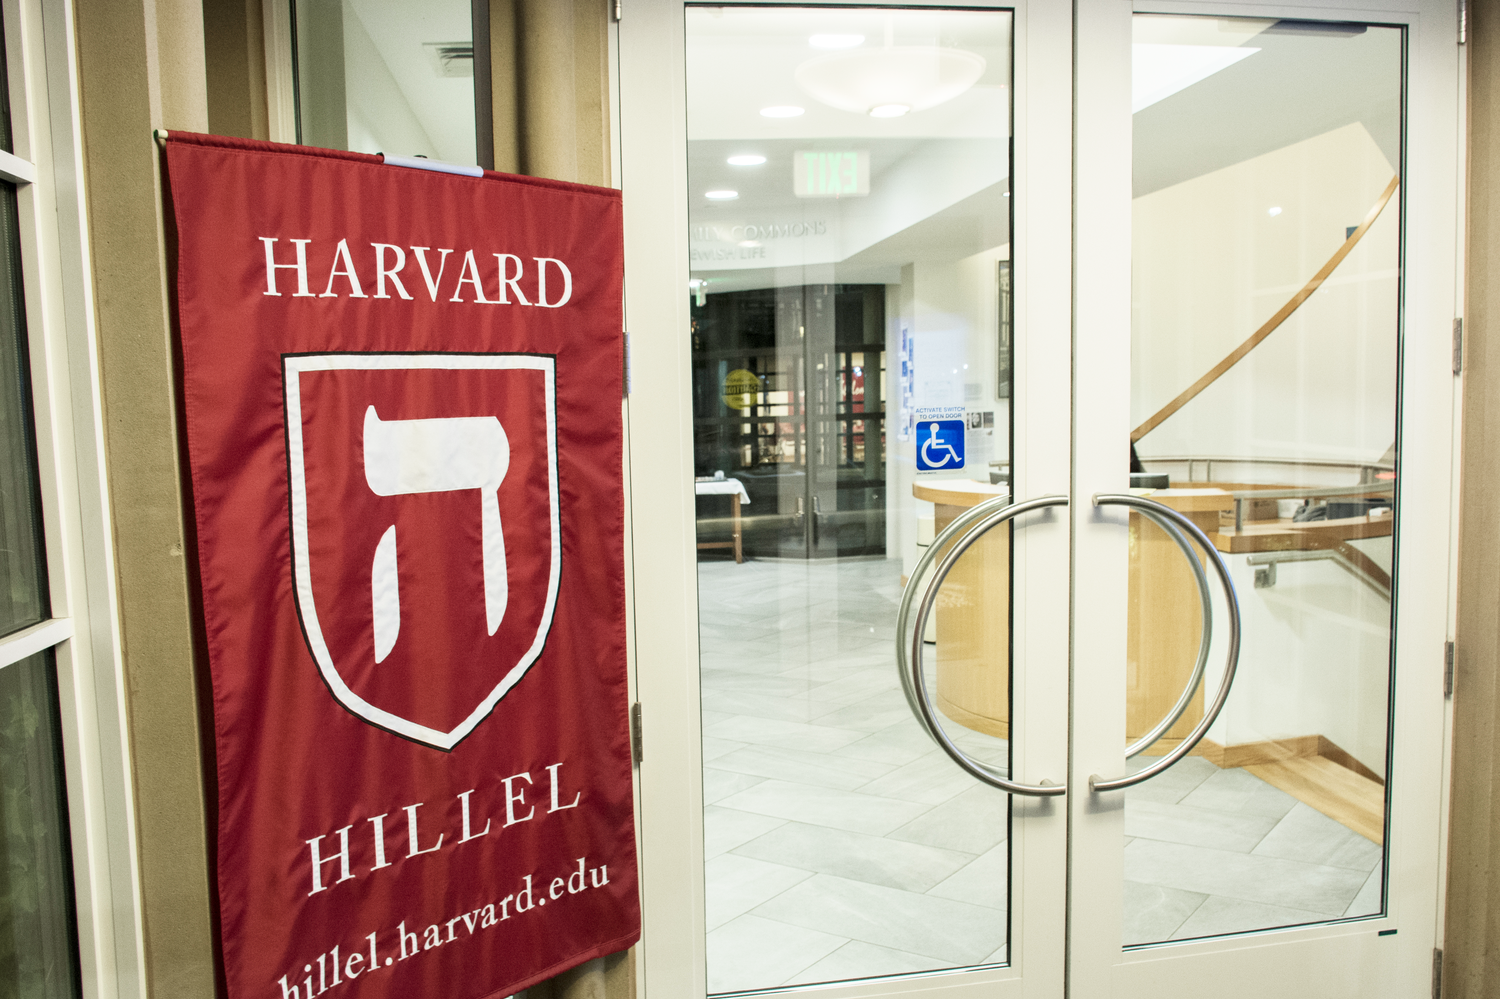 A recent petition has been sent around about the Harvard College Israel Trek trip and its inclusivity. The Israel Trek group hosts its meetings in Harvard Hillel.